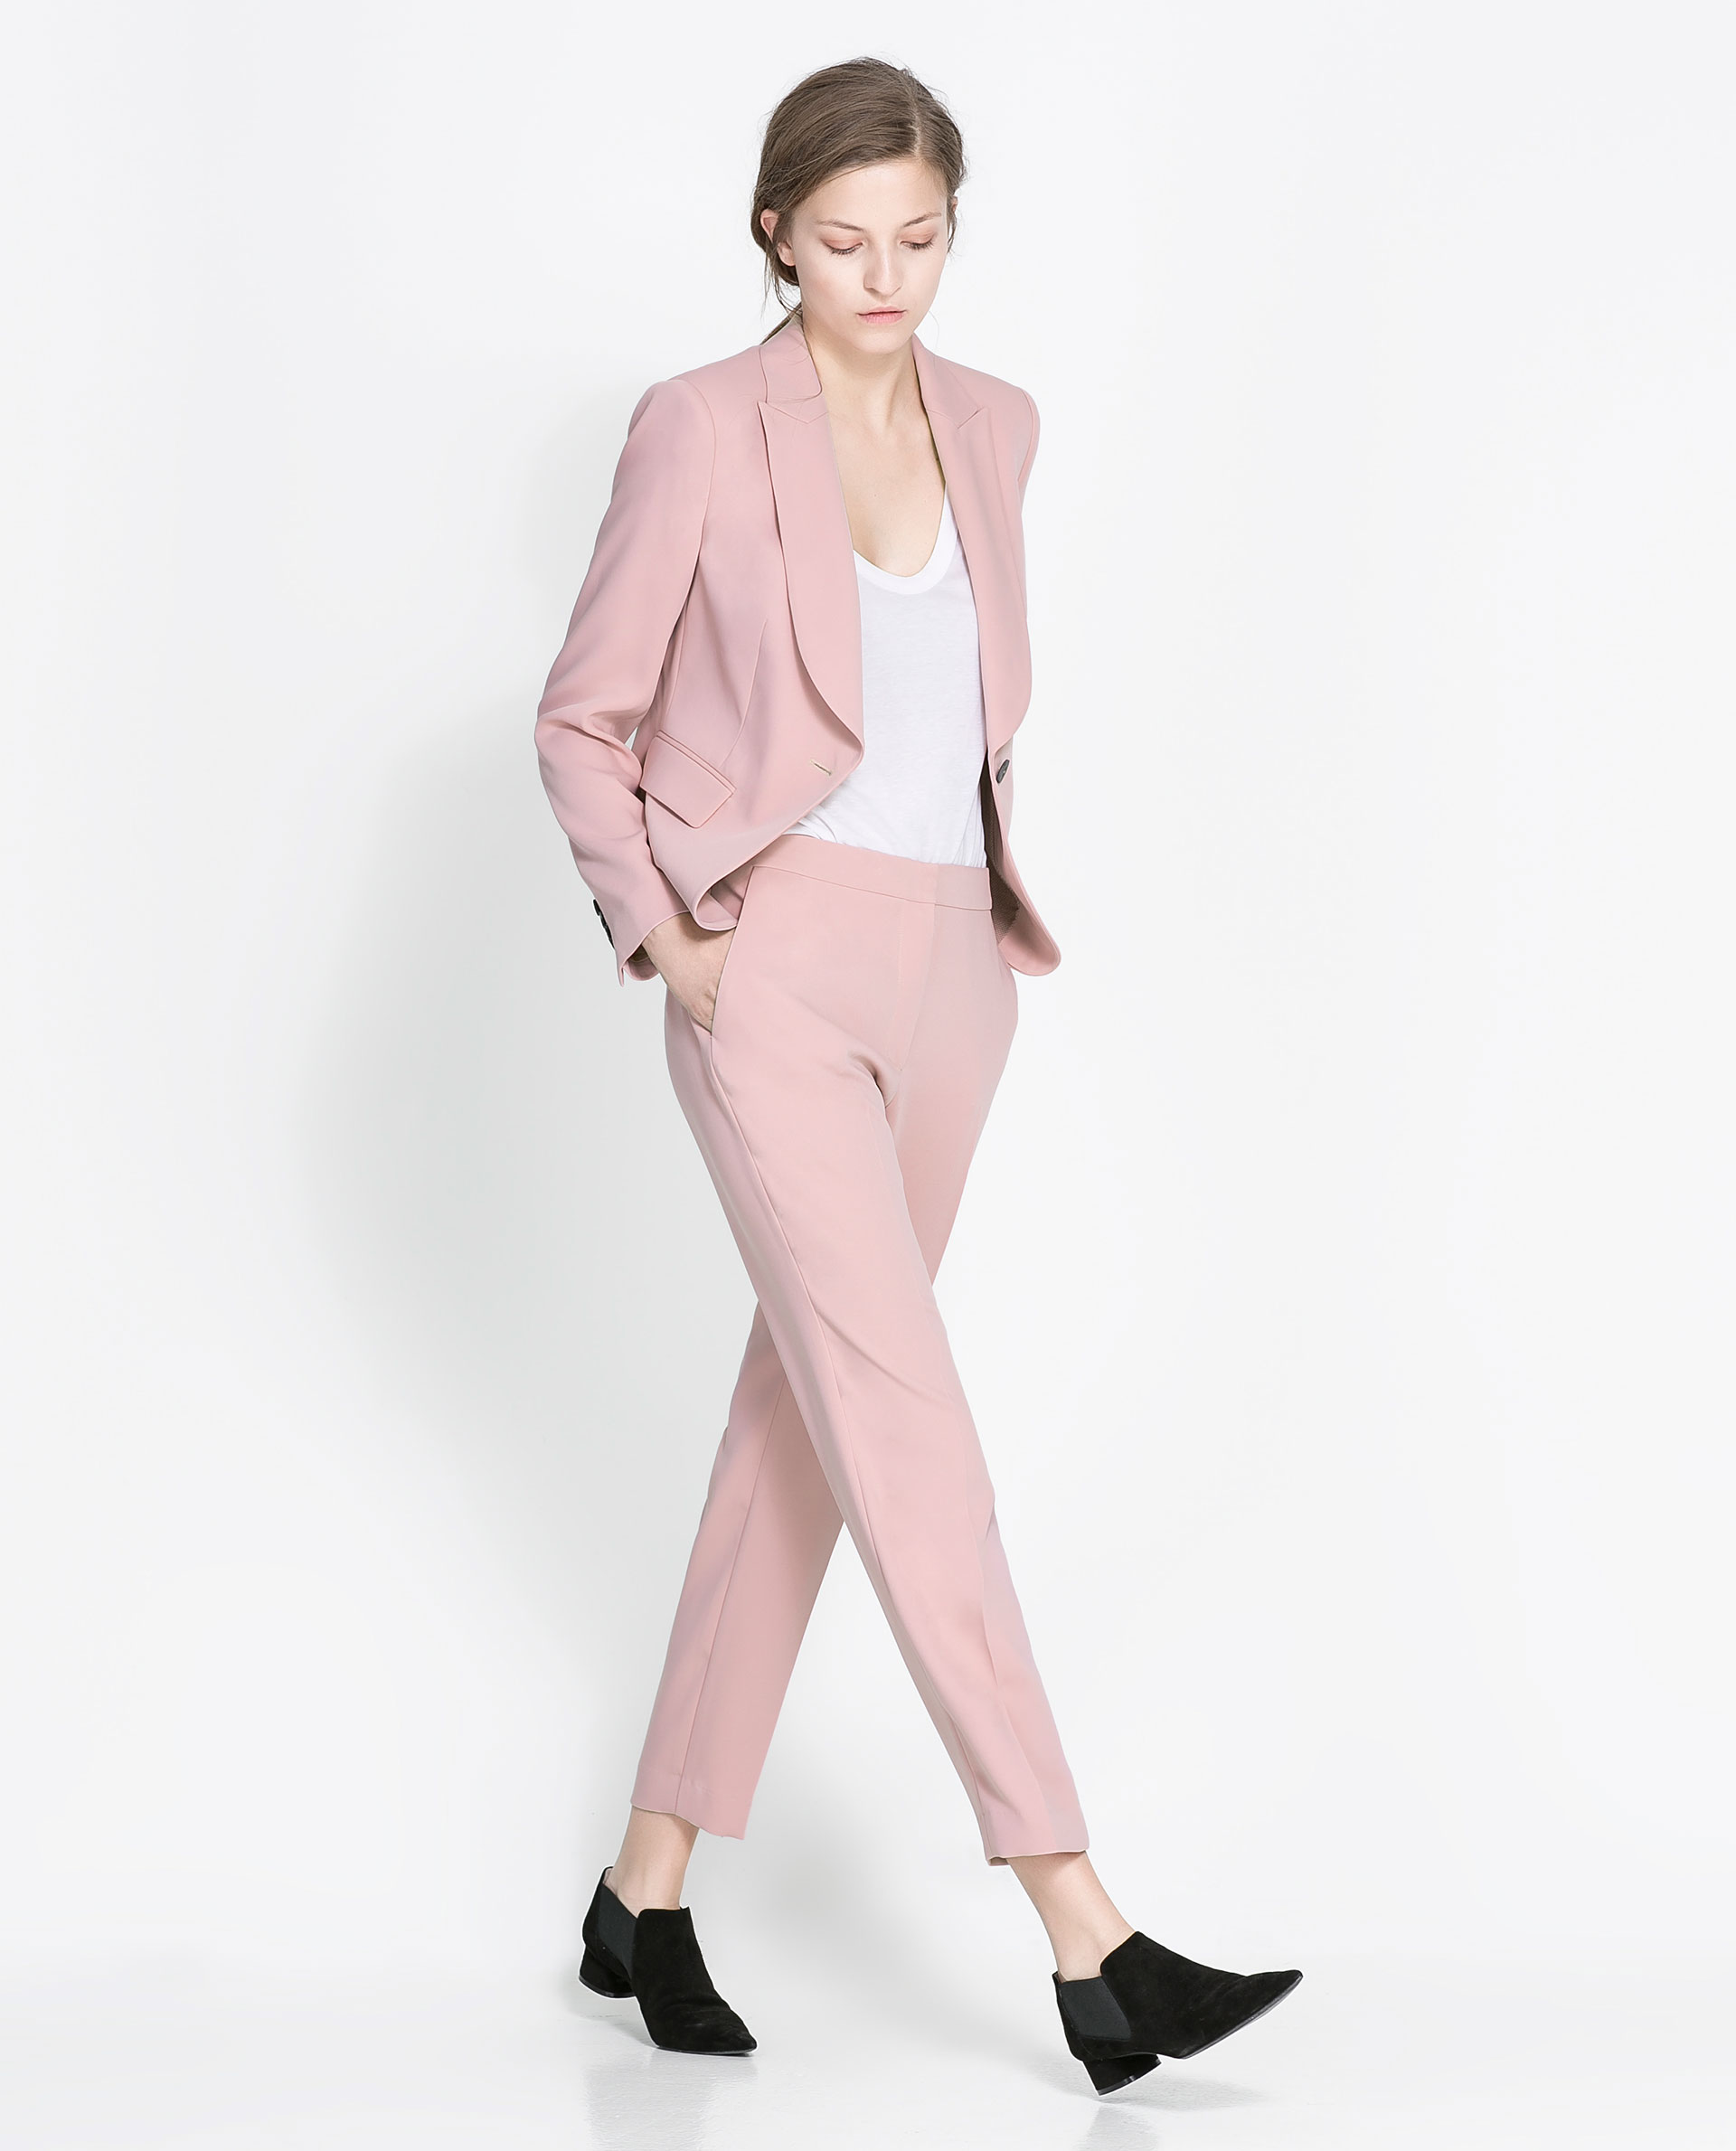 FREE SHIPPING AVAILABLE! Shop lemkecollier.ga and save on Pink Pants.